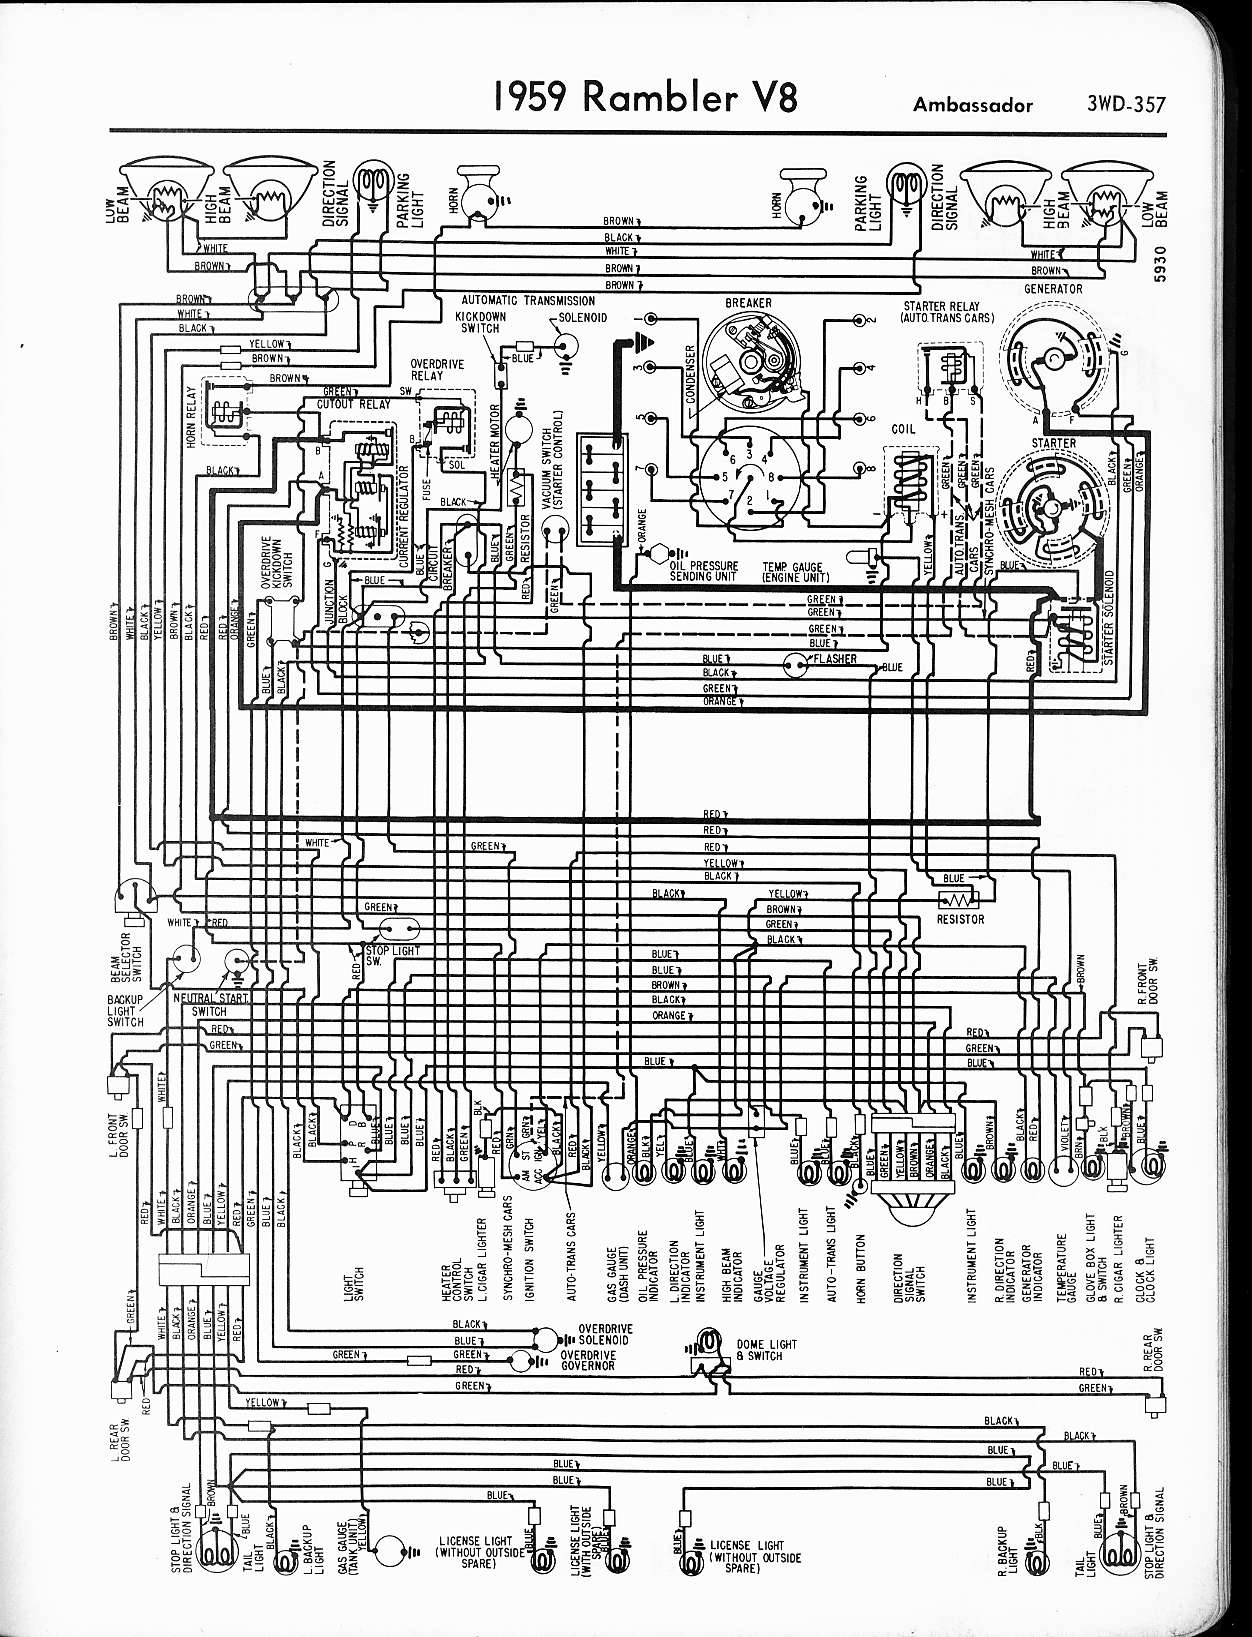 MWire5765 357 rambler wiring diagrams the old car manual project Honda Rebel 250 Wiring Diagram at bayanpartner.co